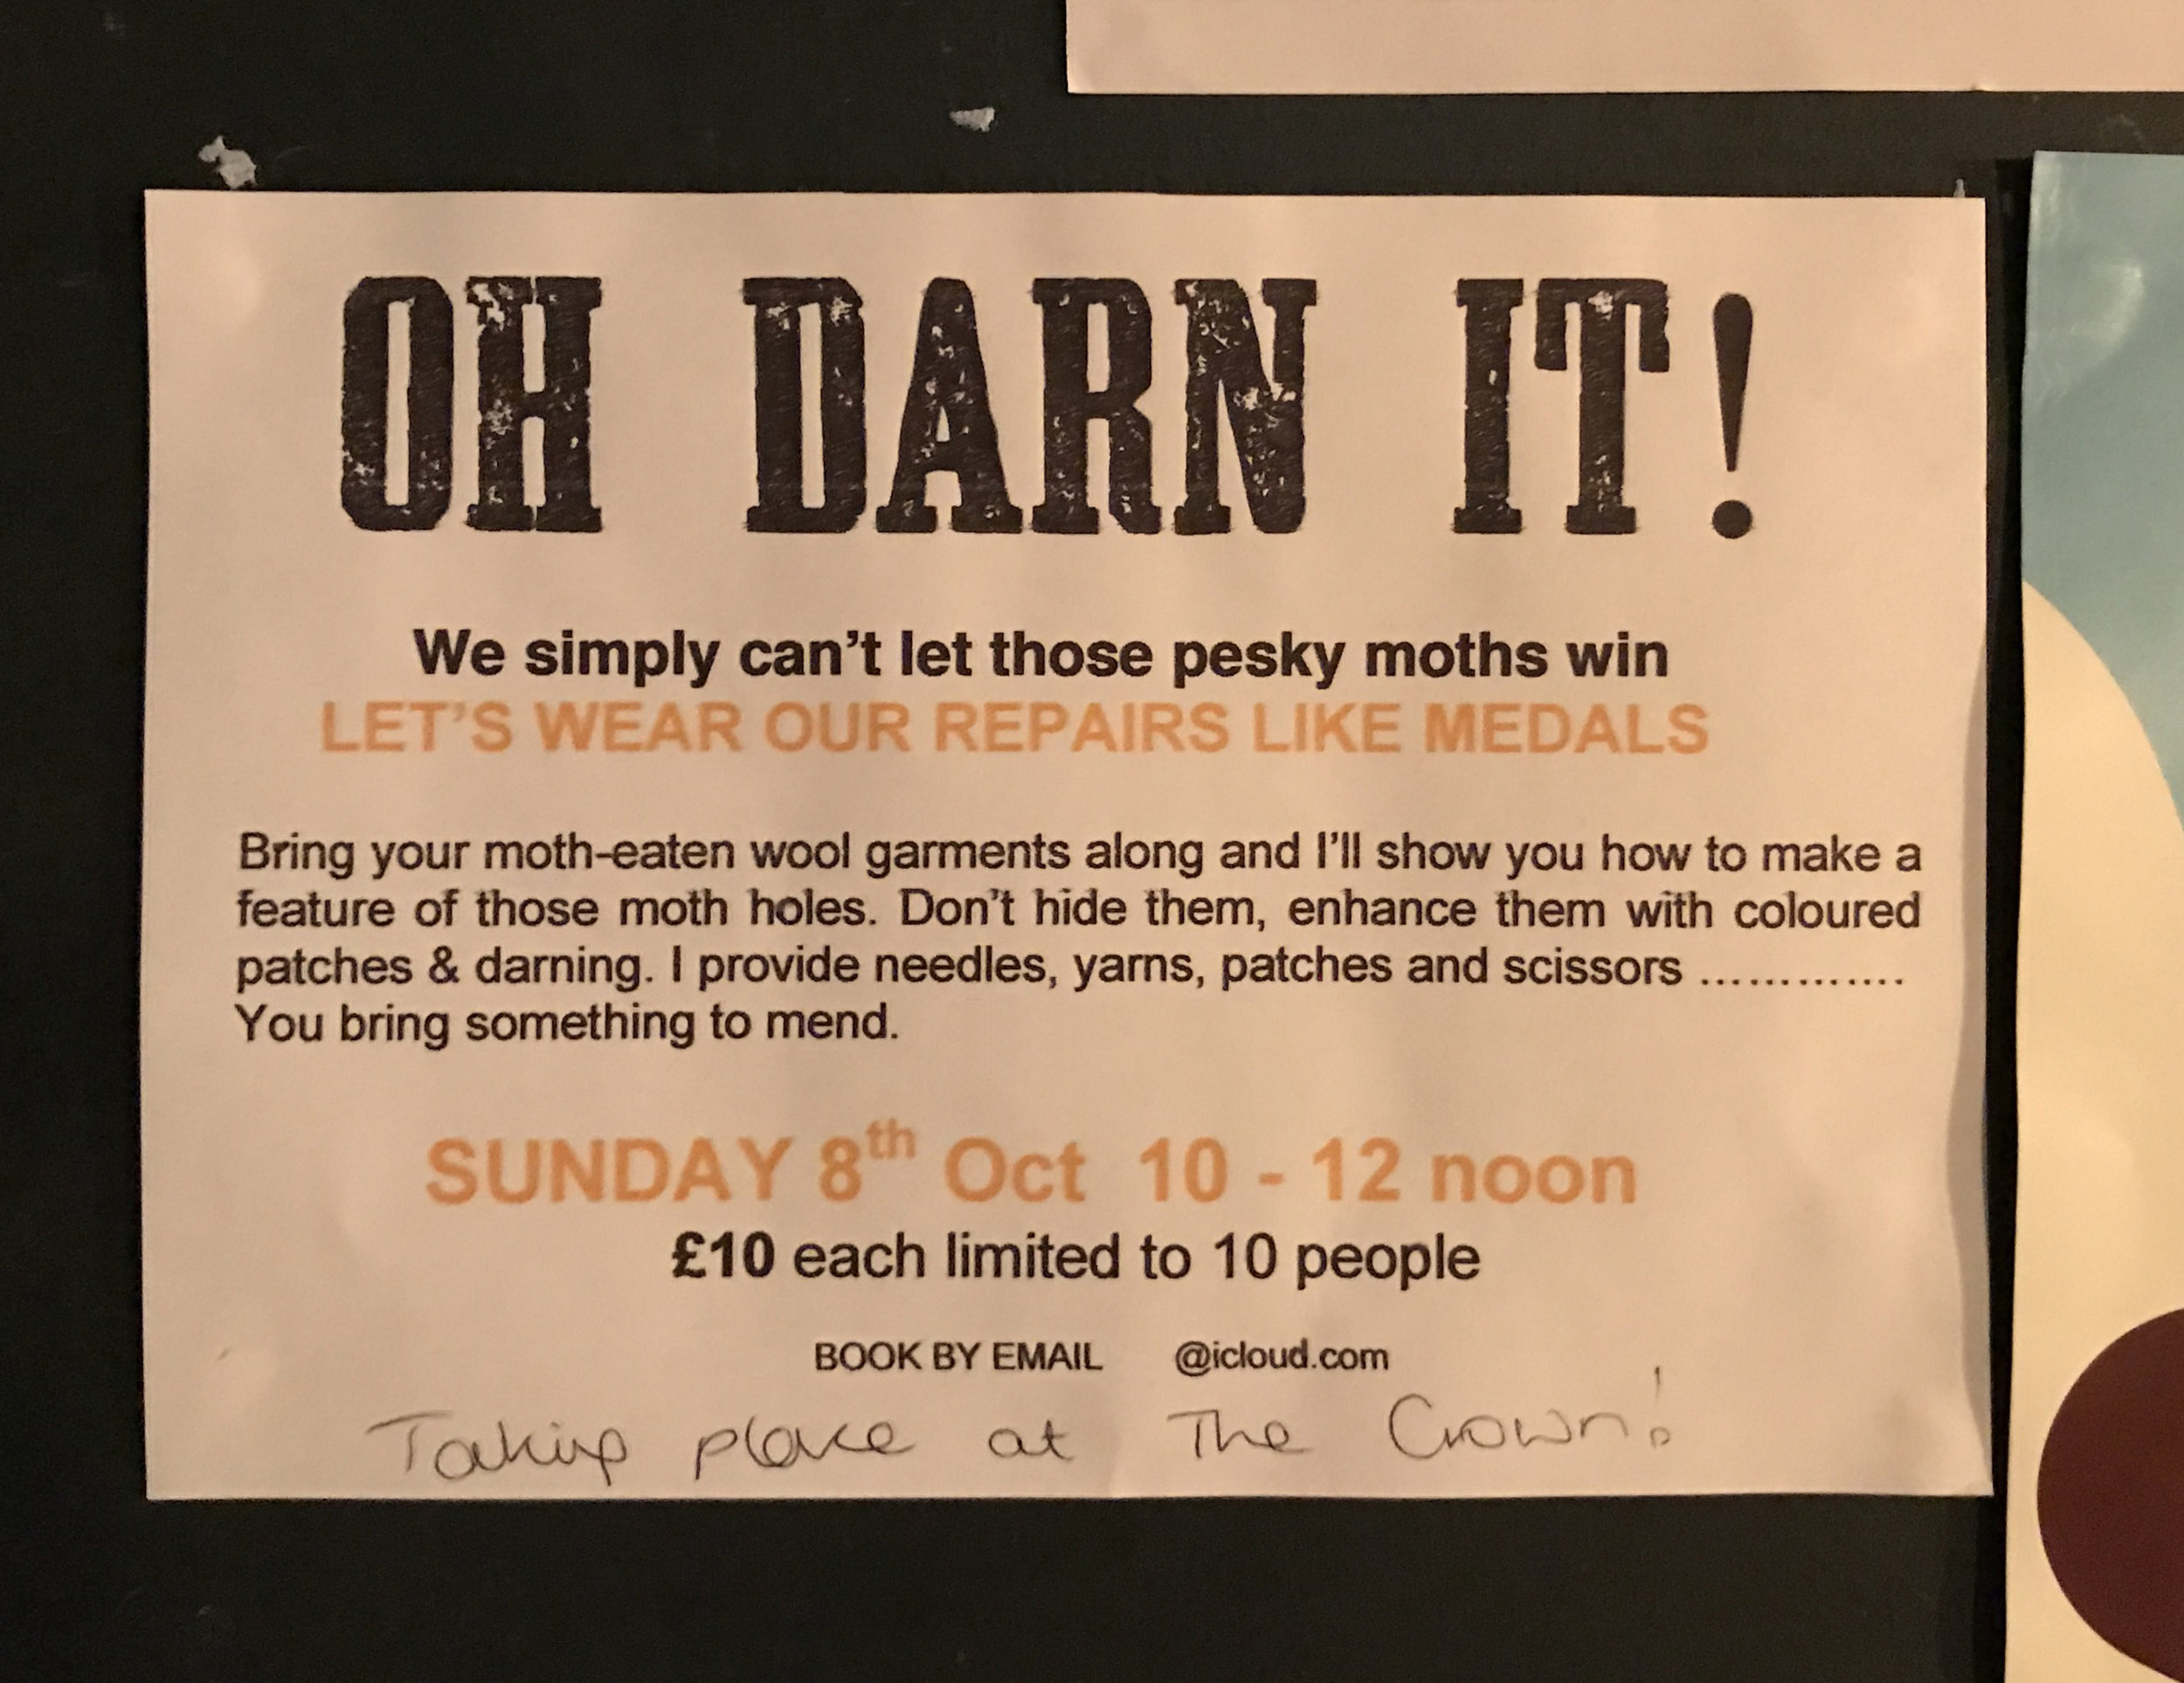 A posting on the community bulletin board at The Crown Pub in Hastings, UK in 2017